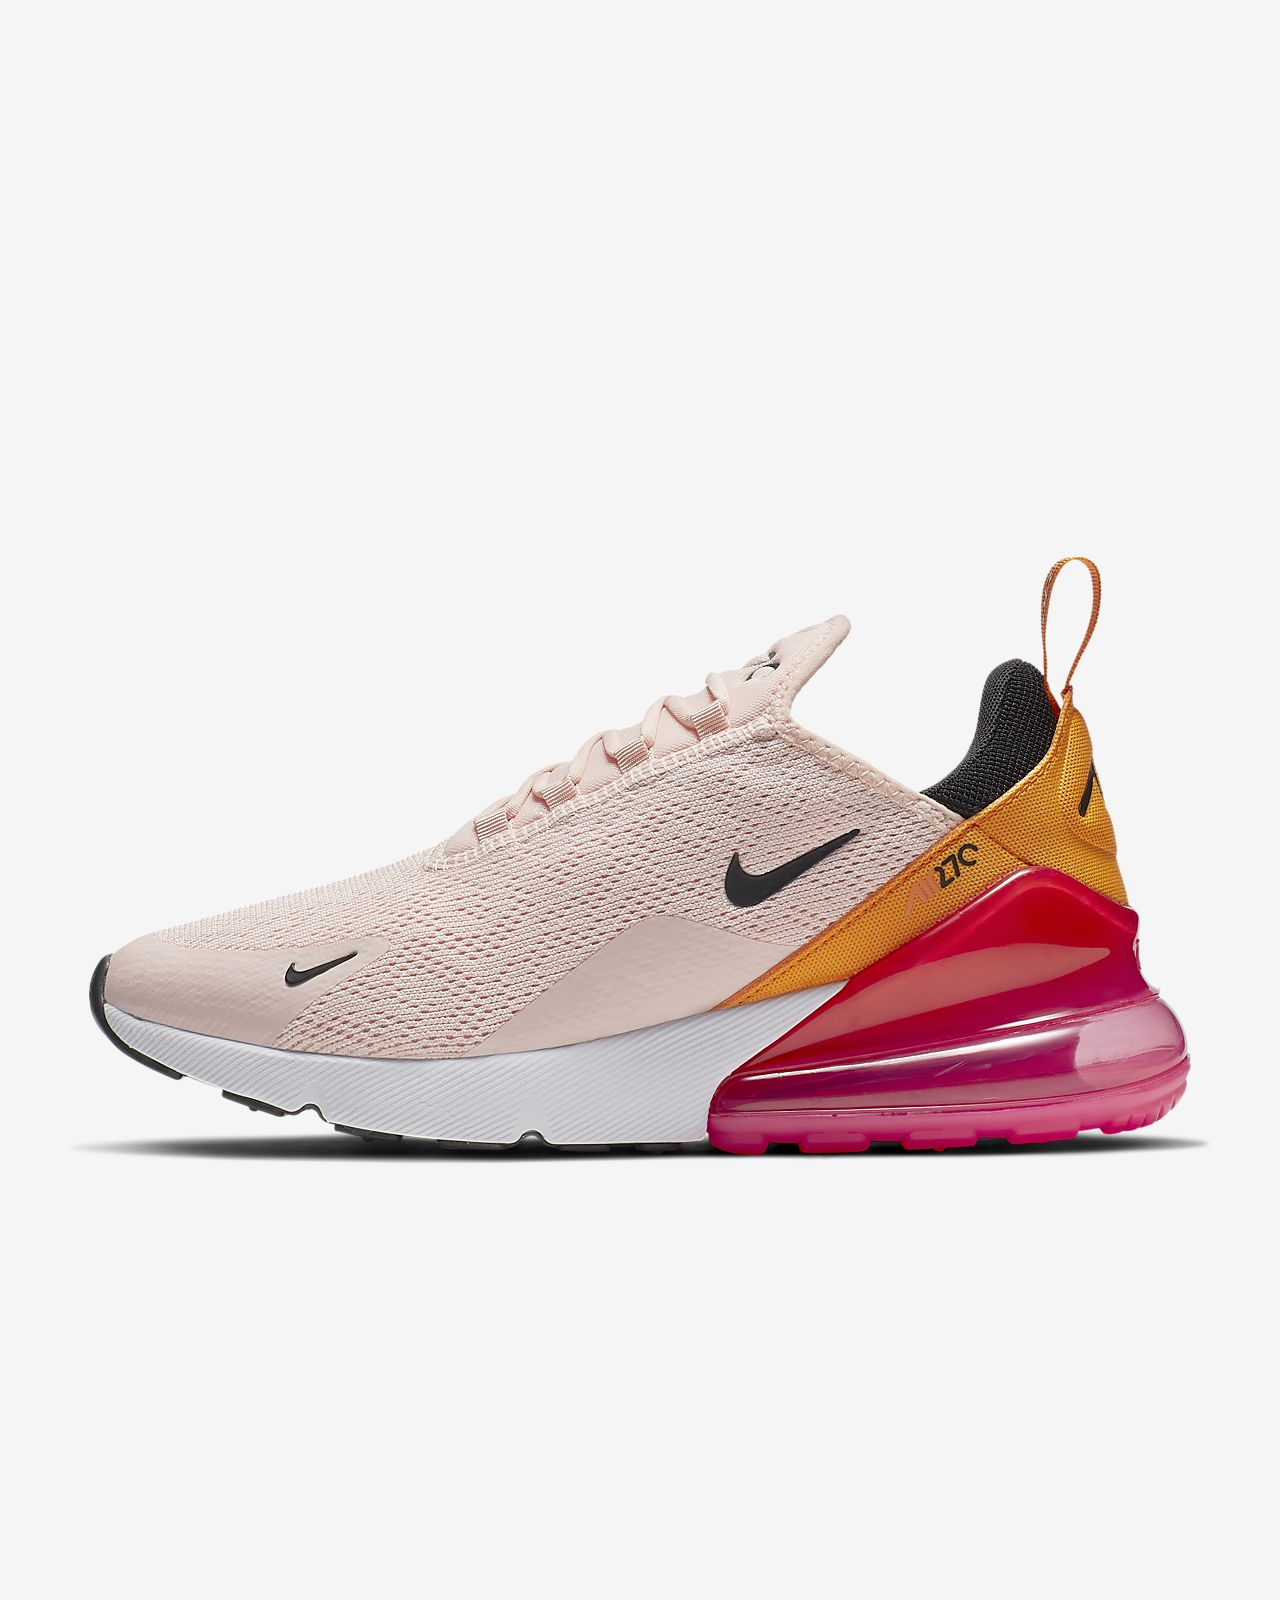 separation shoes 556a9 6a8be ... Nike Air Max 270 Women s Shoe